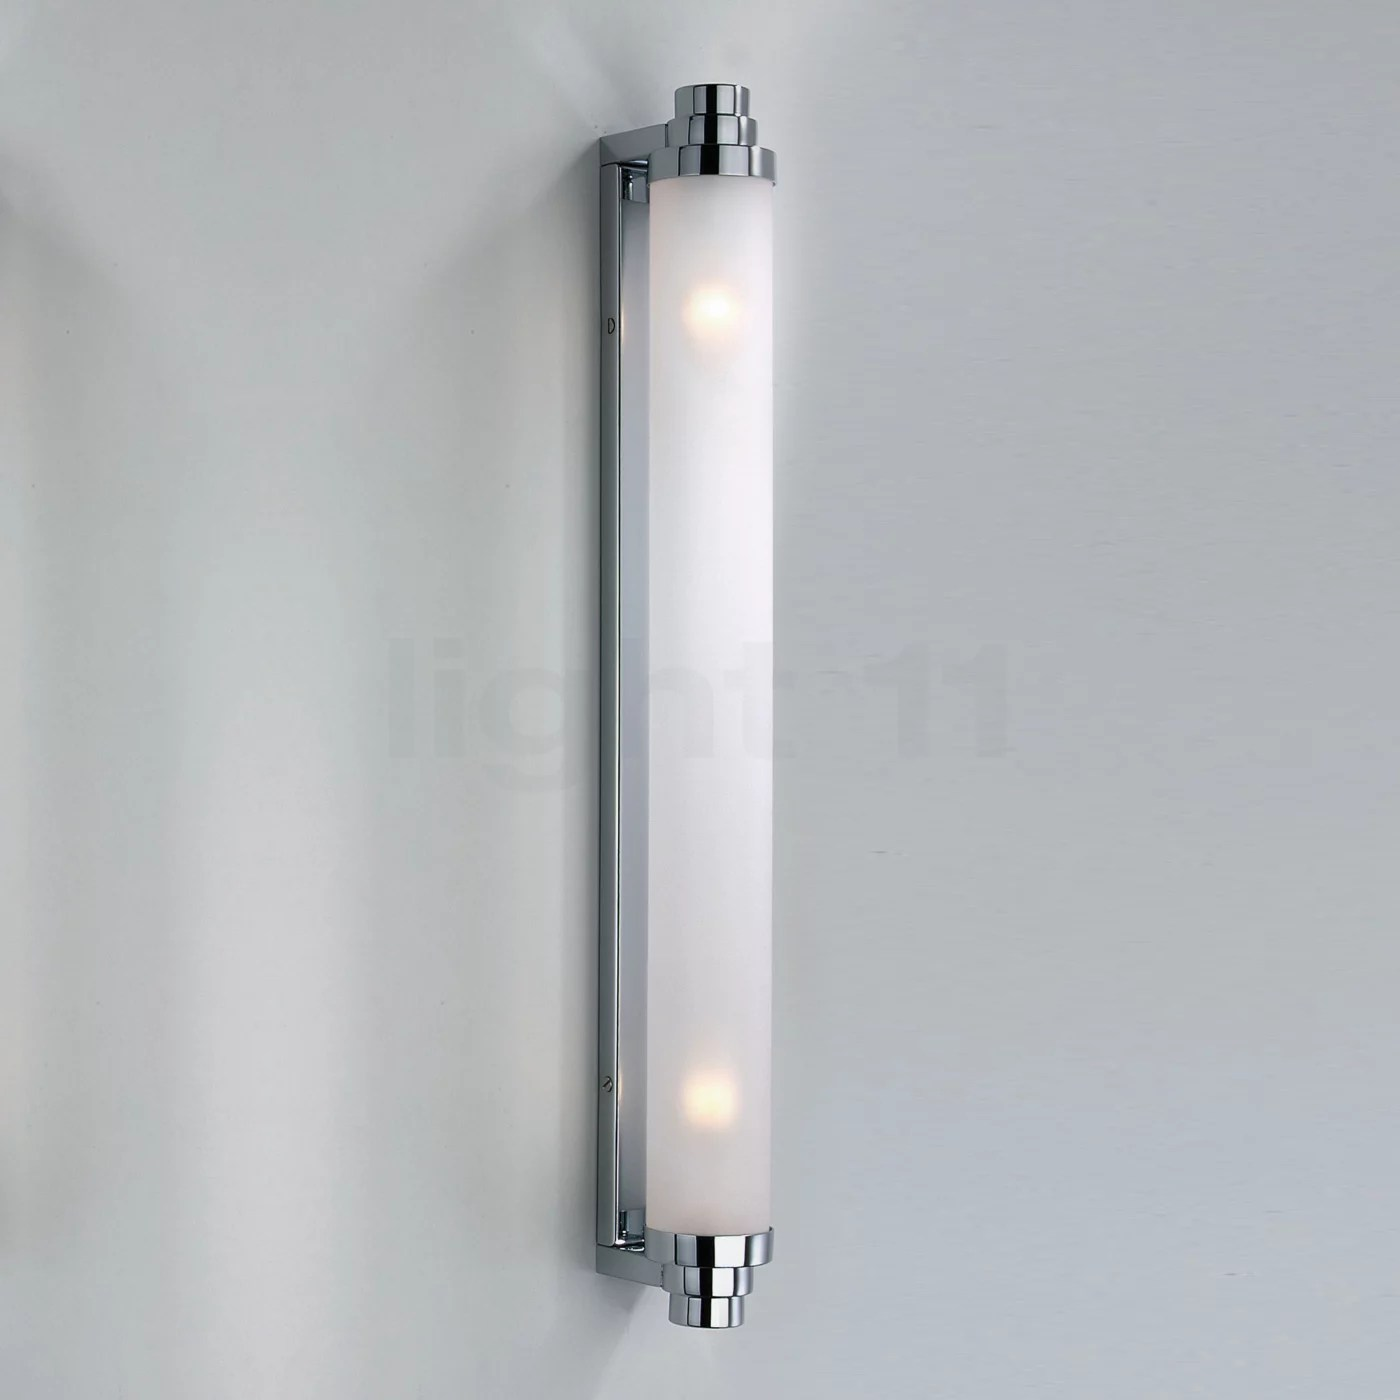 Decor Walther Buy Decor Walther Vienna 60 Pl Wall Light At Light11 Eu